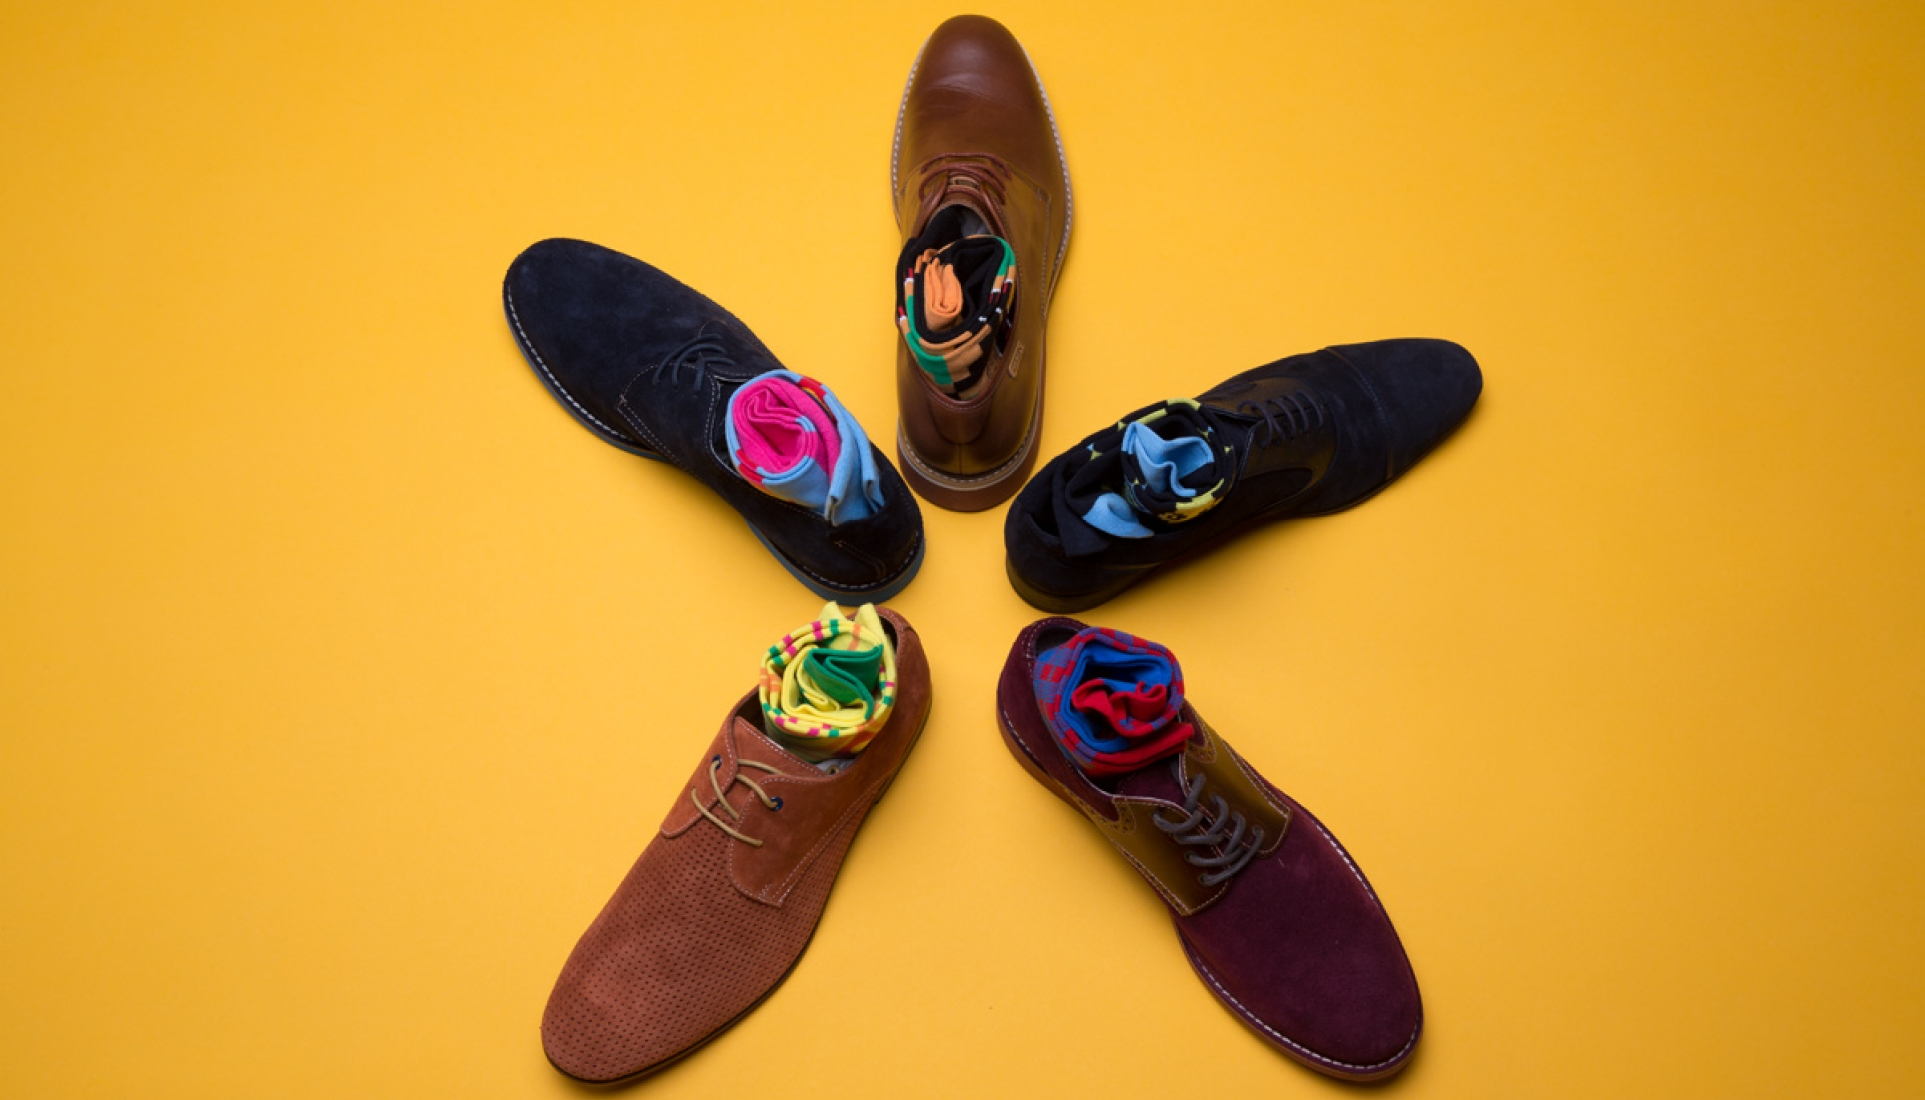 Coptic Soles - Mens Colorful Socks with a storyline